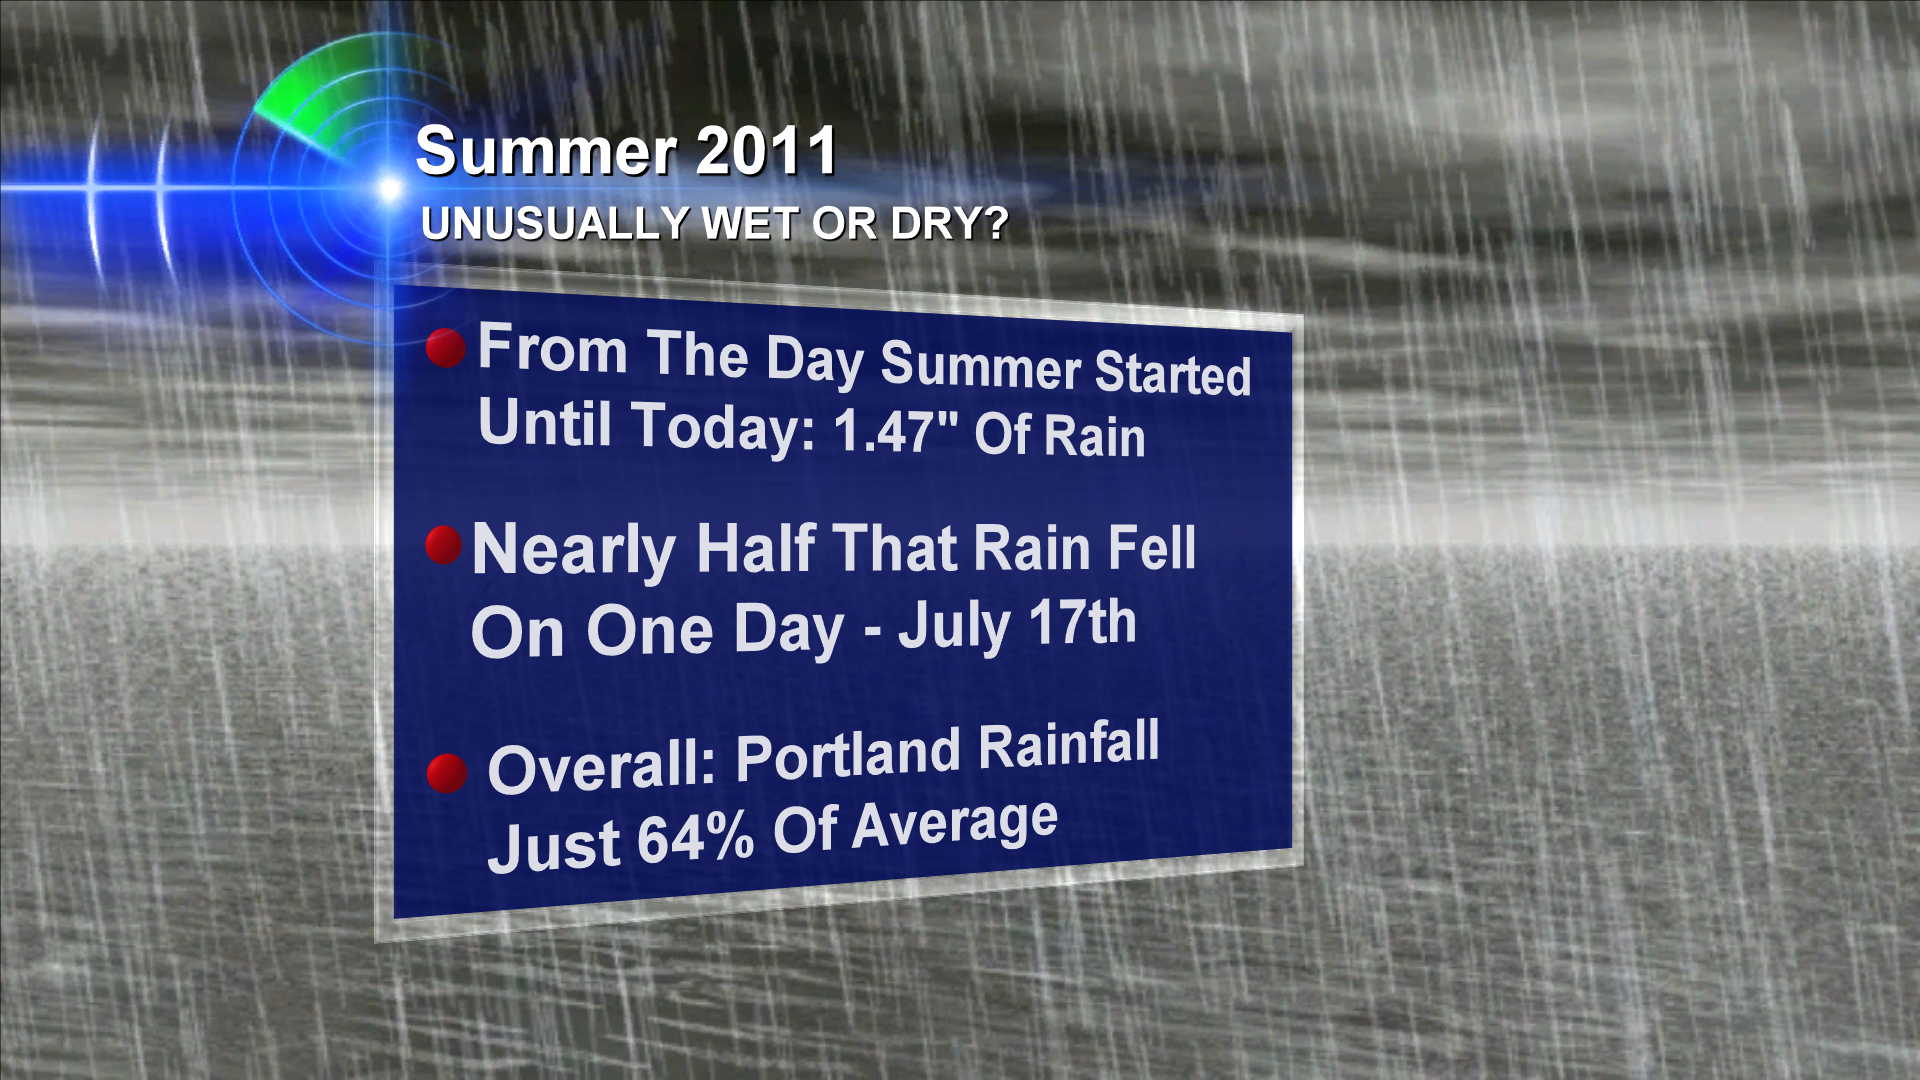 Summer 2011 In Portland: The Summer That Ran One Month Behind